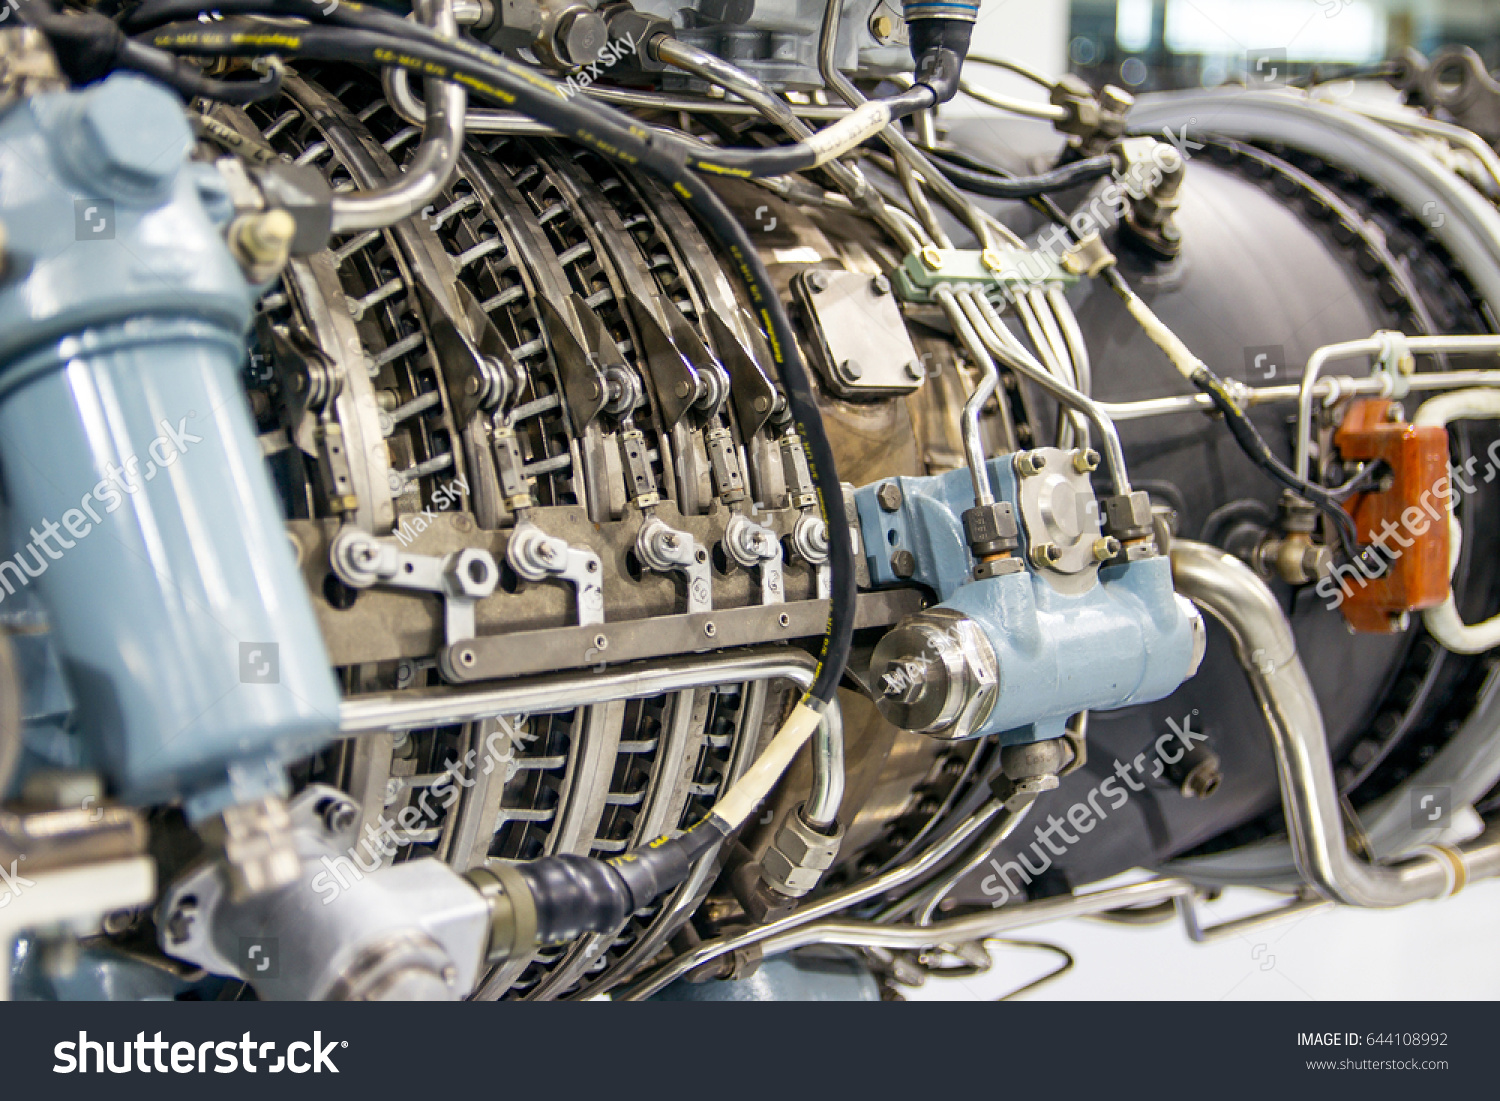 Aircraft engine. Internal components of the aircraft engine